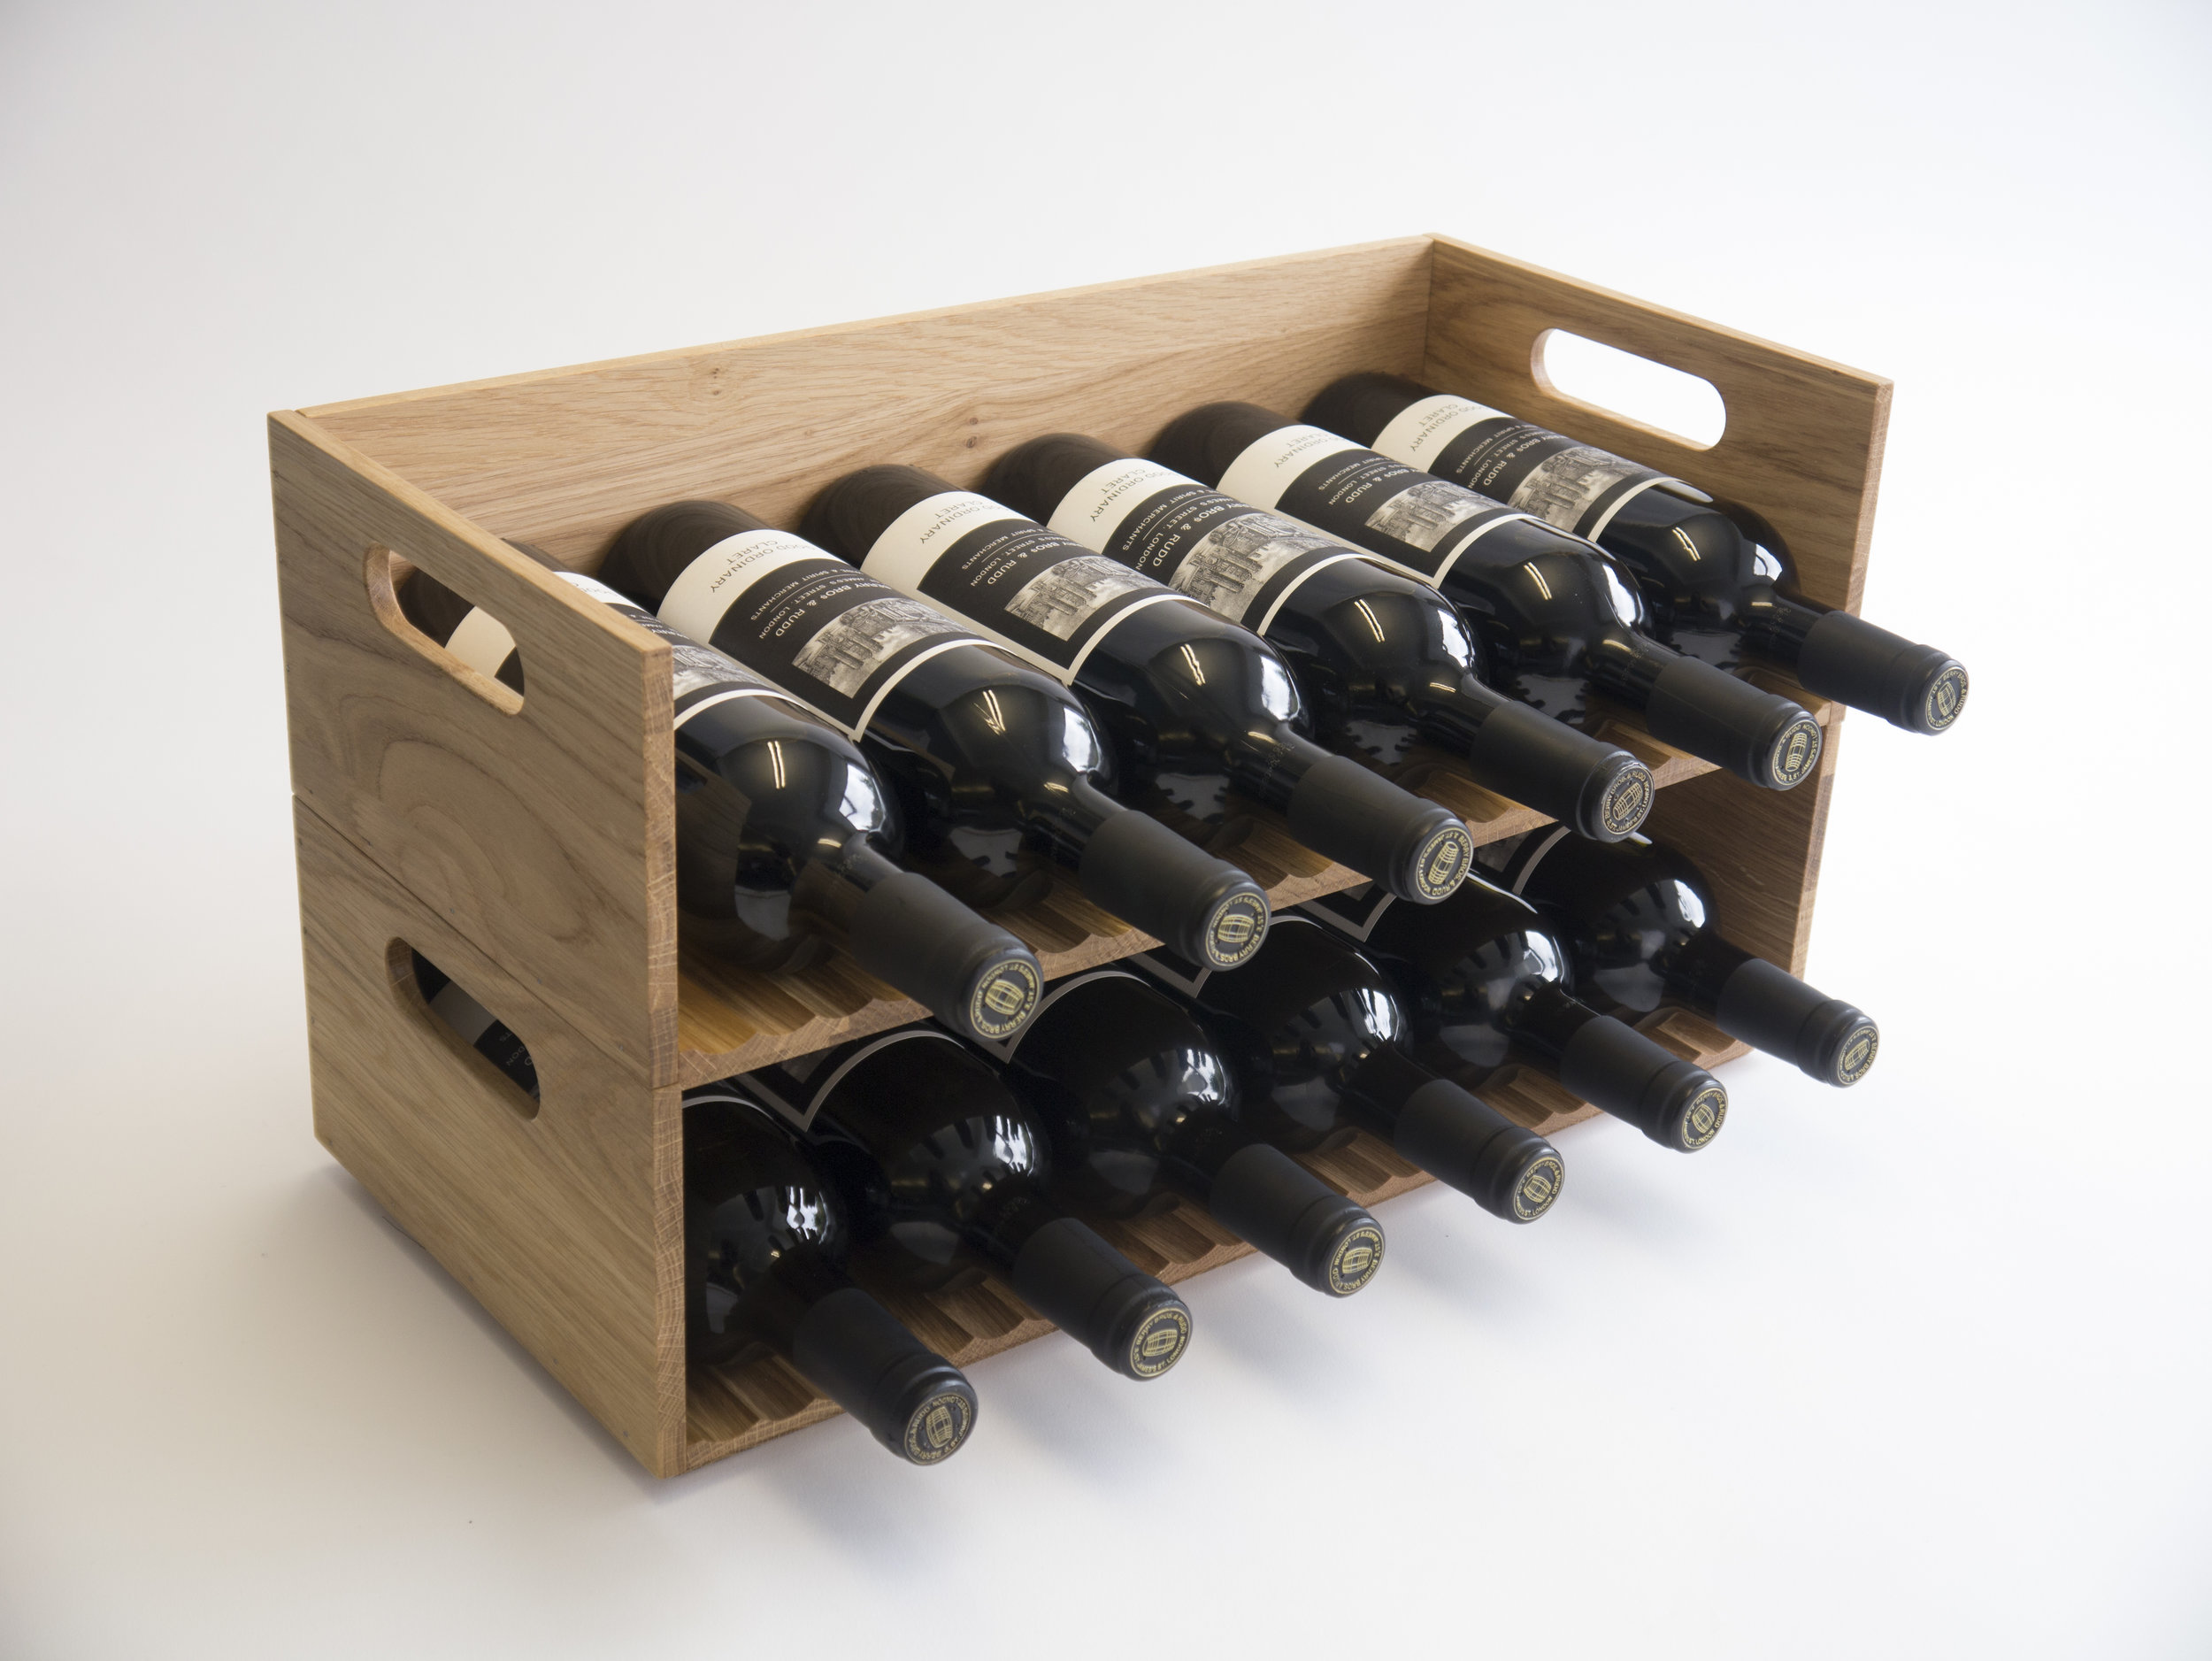 Wooden Wine Racks Designed by Mowat and Company Architects